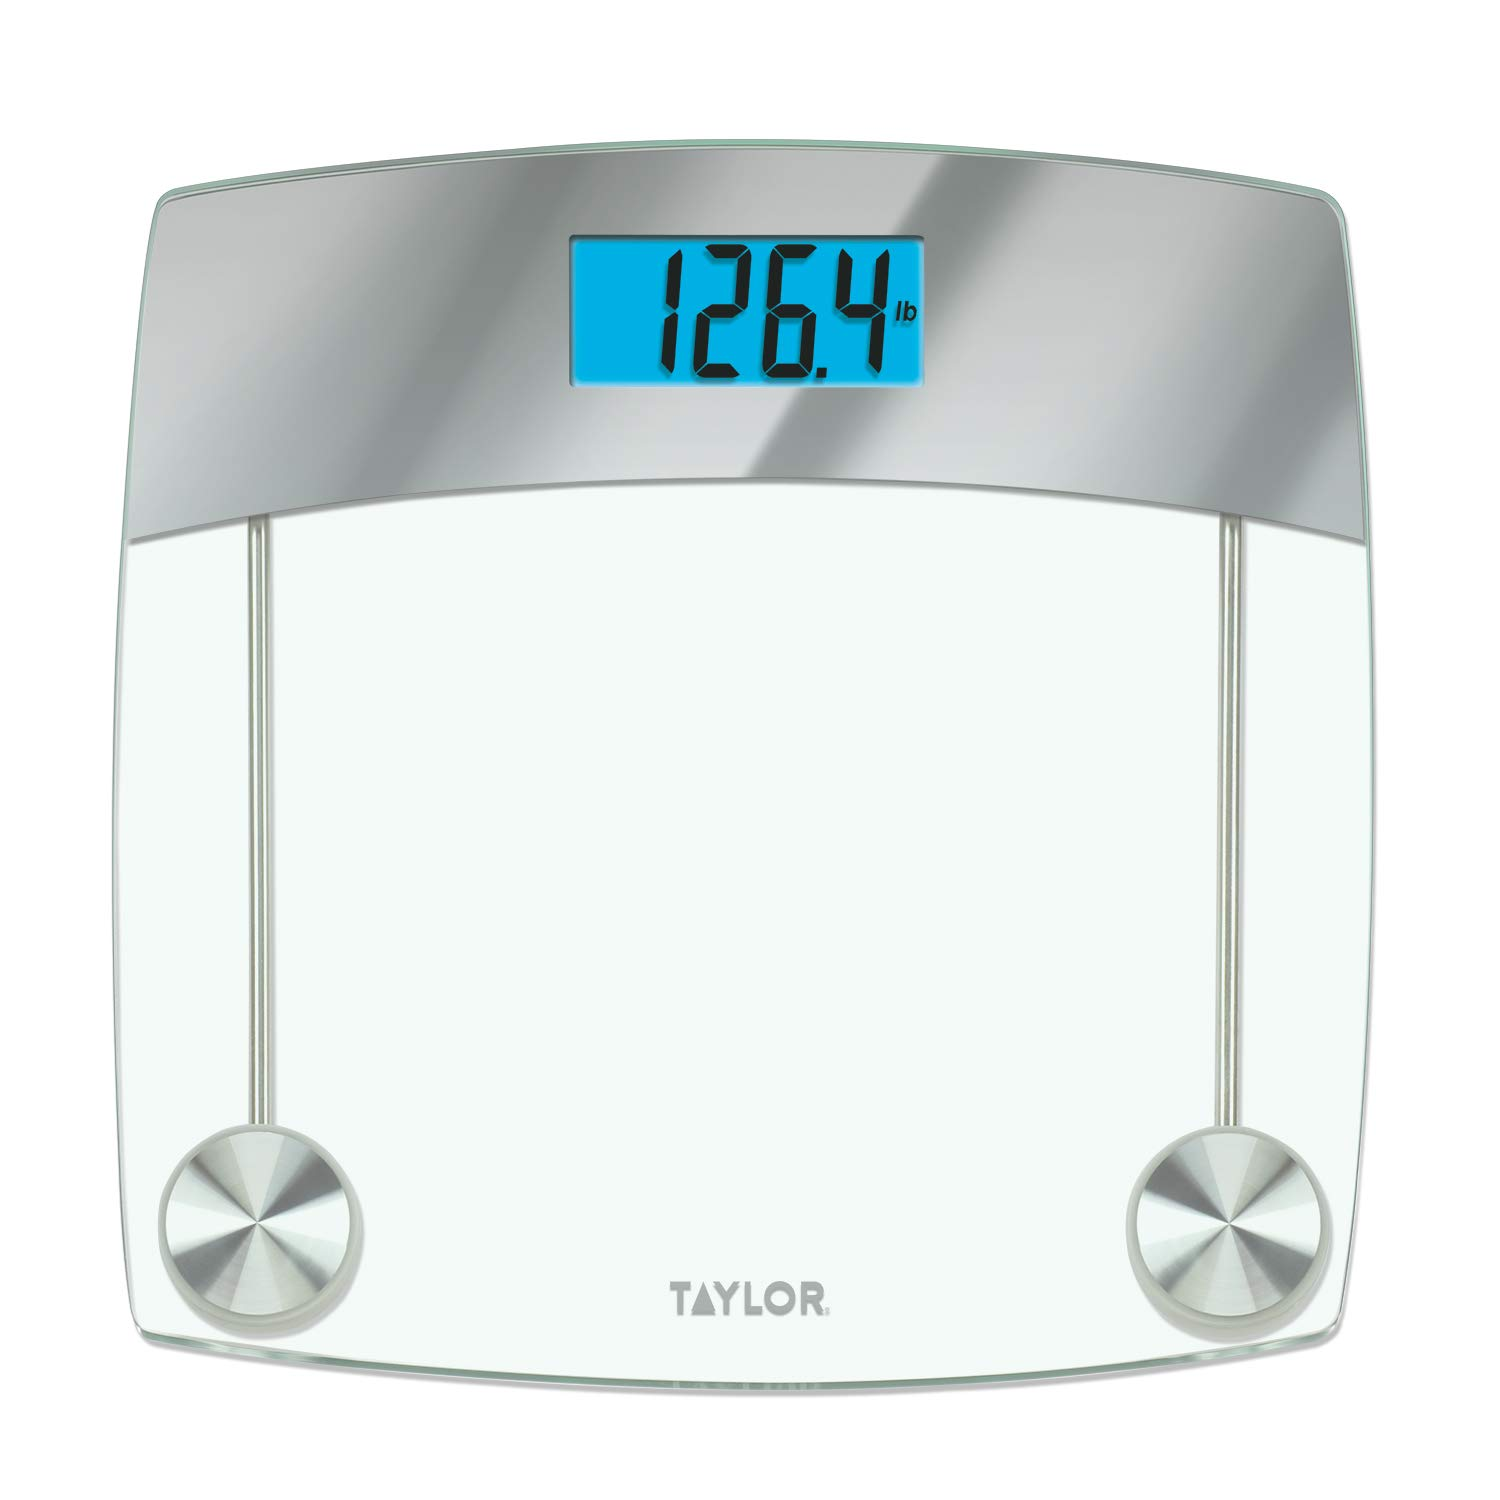 Taylor Digital 440lb Capacity Digital Bathroom Scale Clear Mirrored Accents Glass